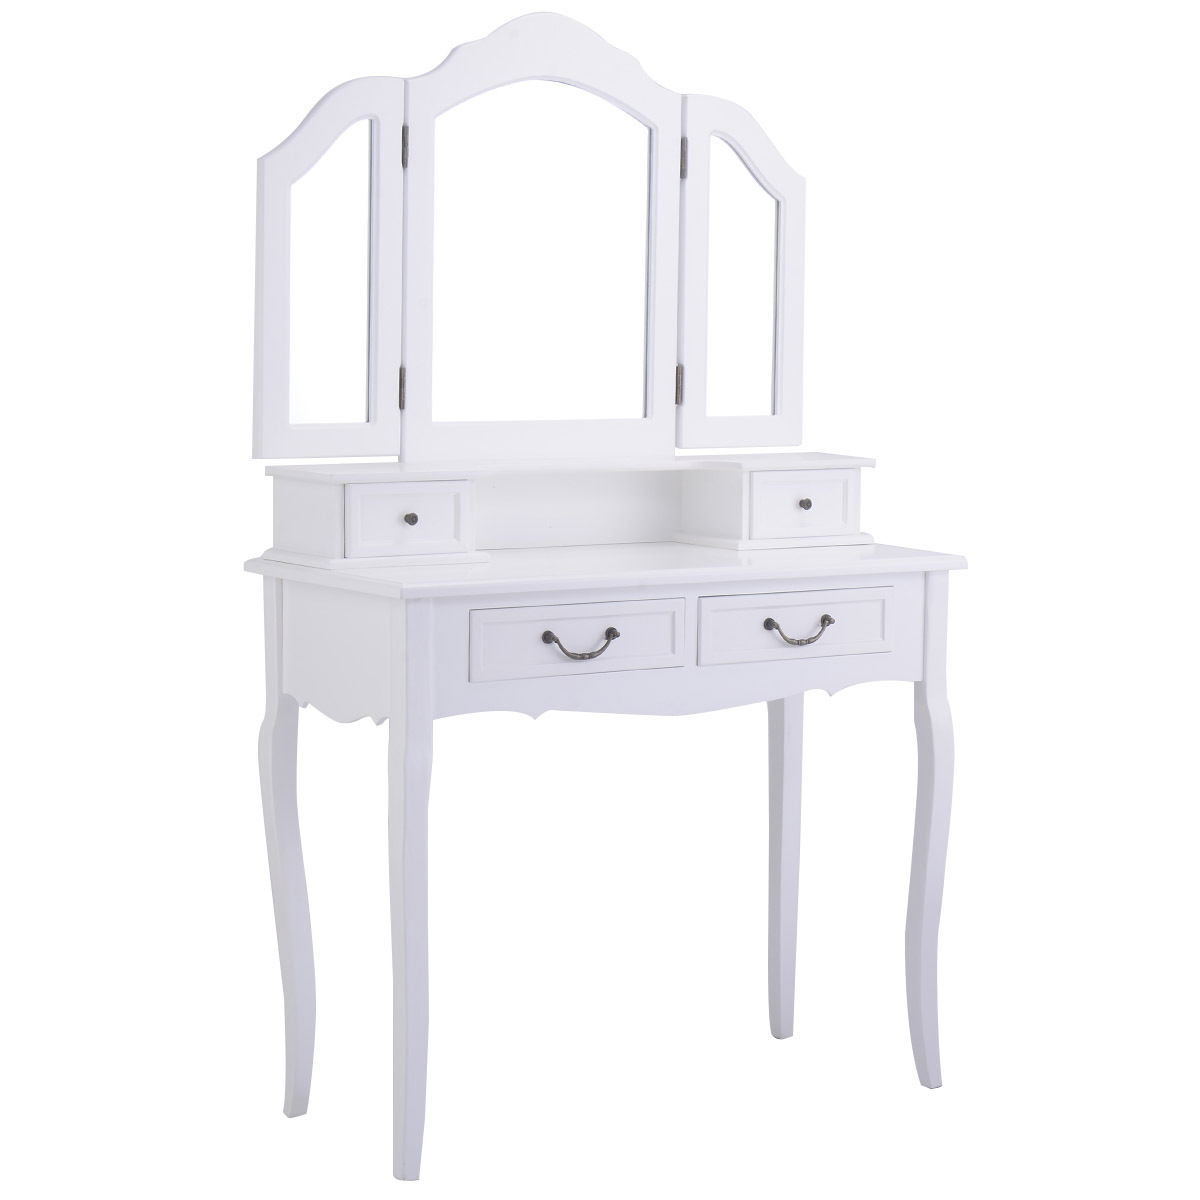 Amazing Tri Folding Mirror White Wood Vanity Set Makeup Bathroom Table Dresser 4  Drawers + Stool   Walmart.com